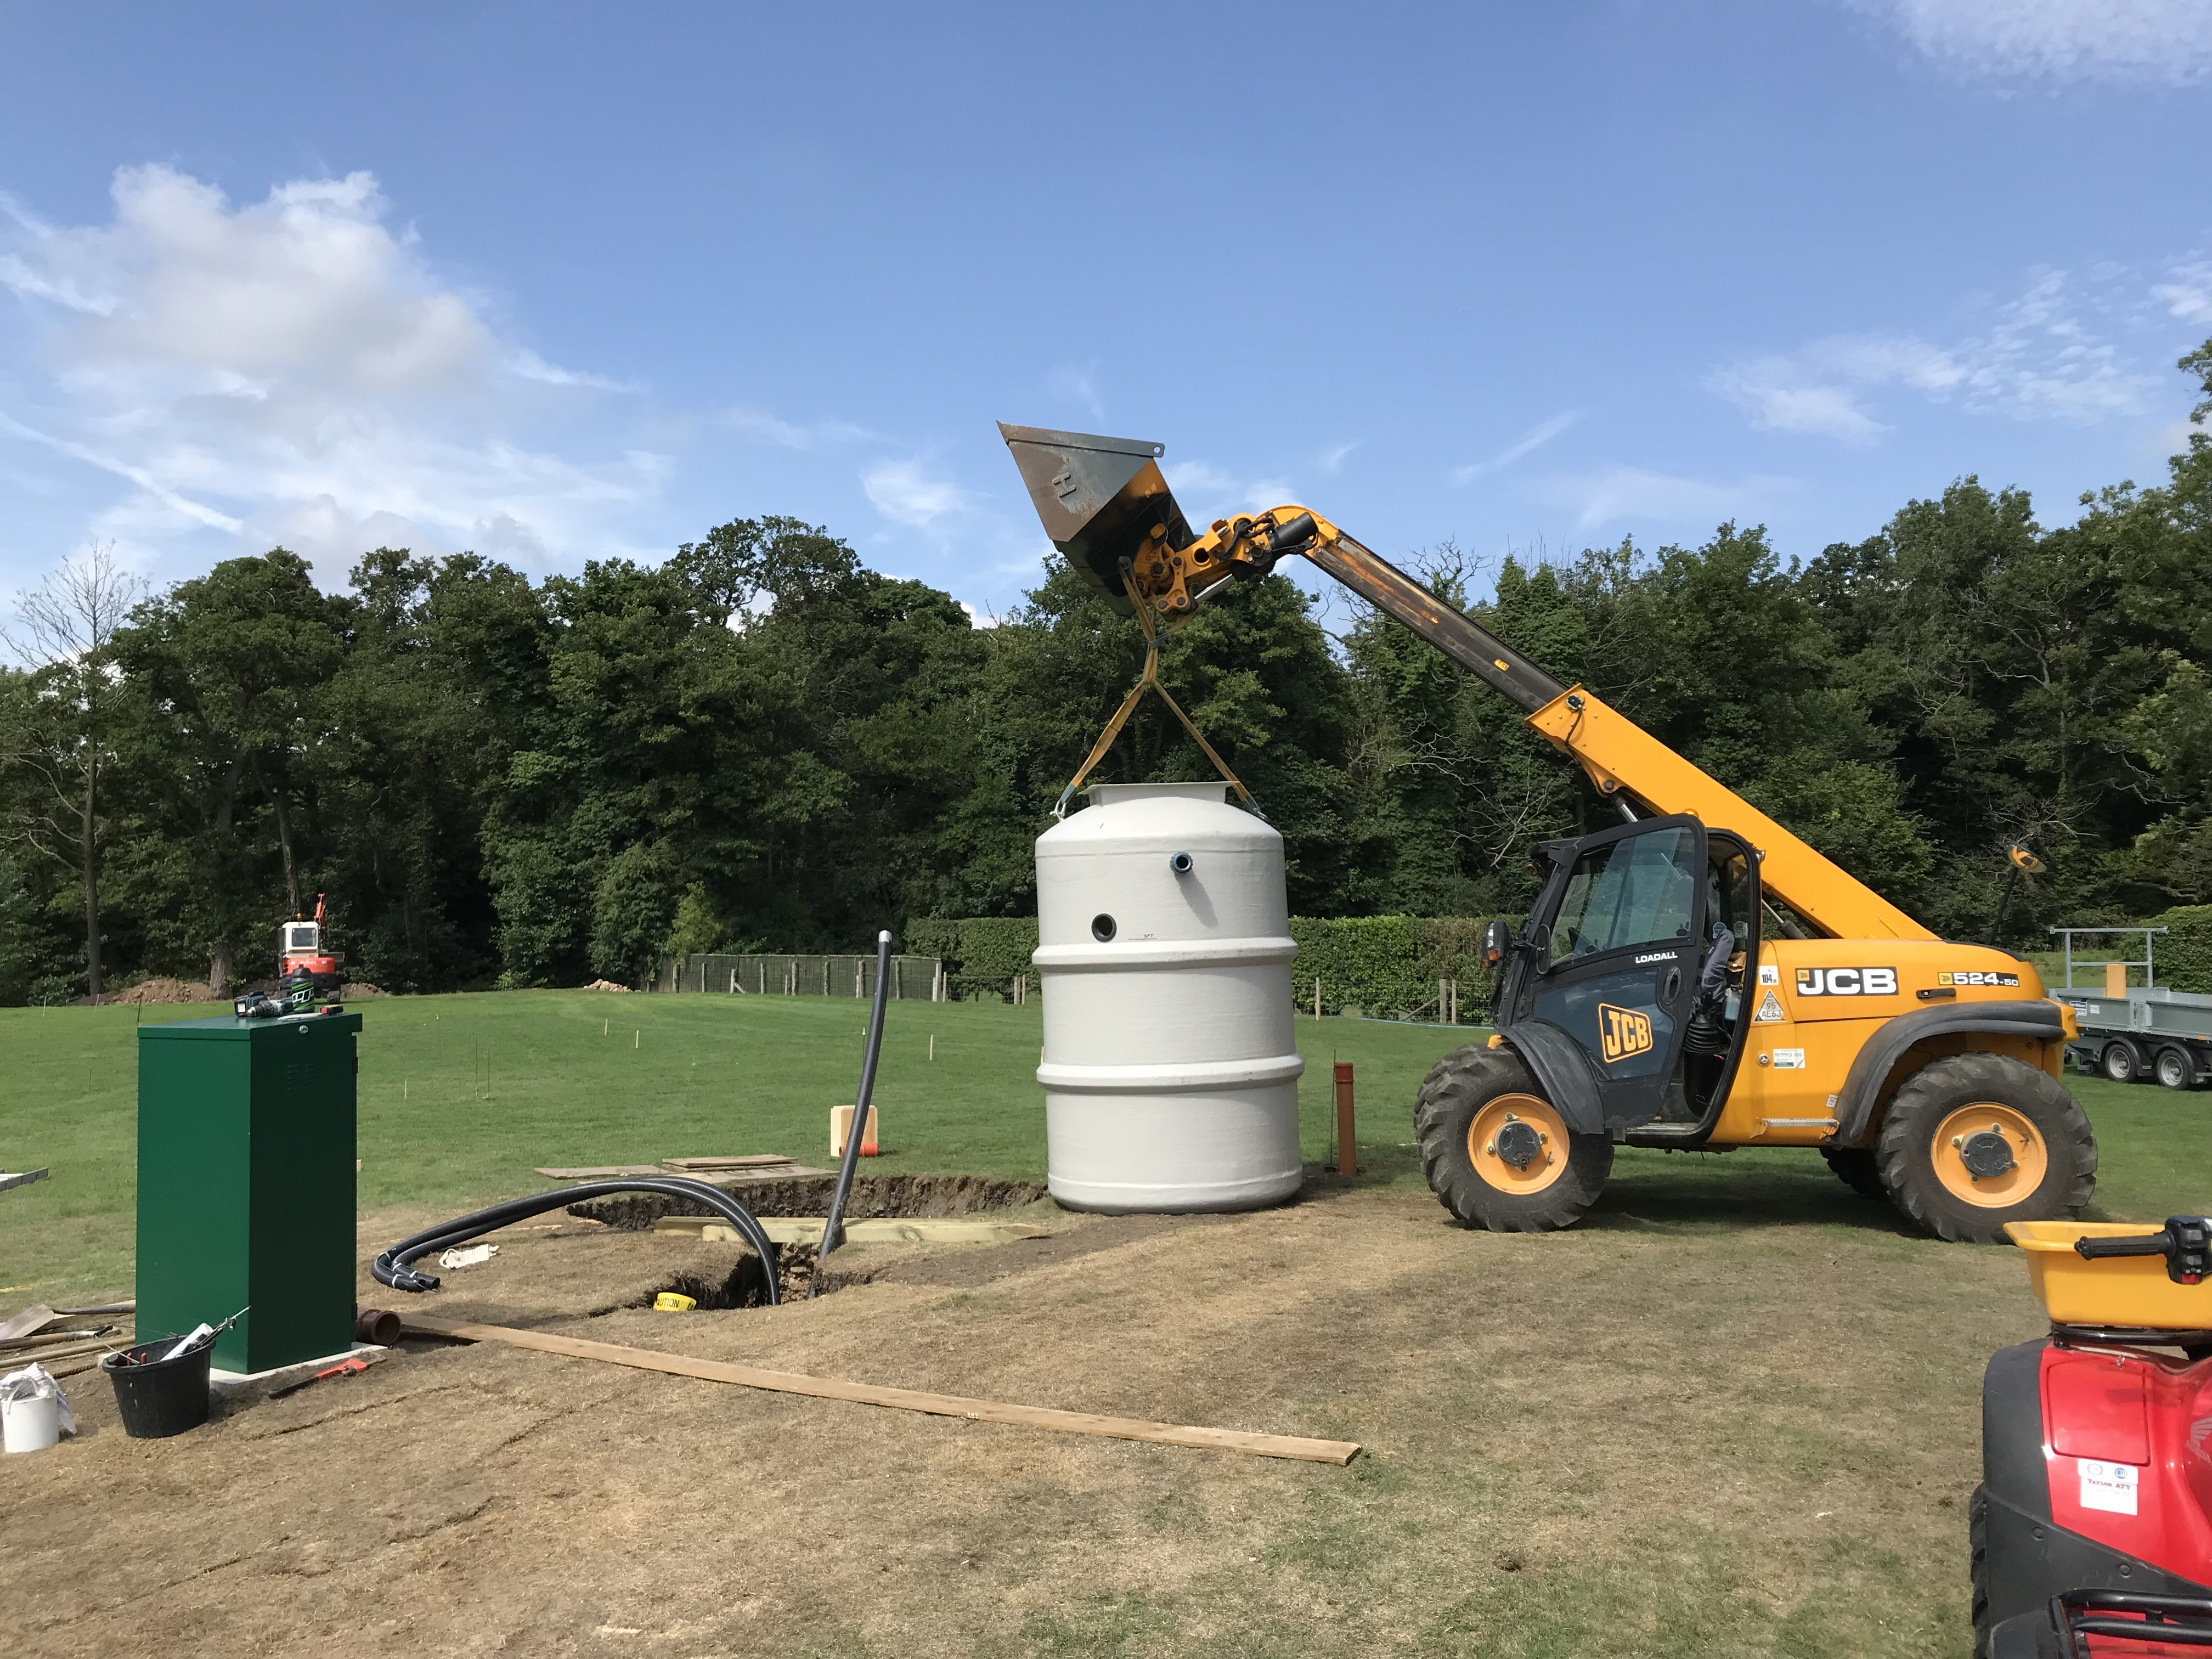 7th August - Waste Tank Ready to Install!